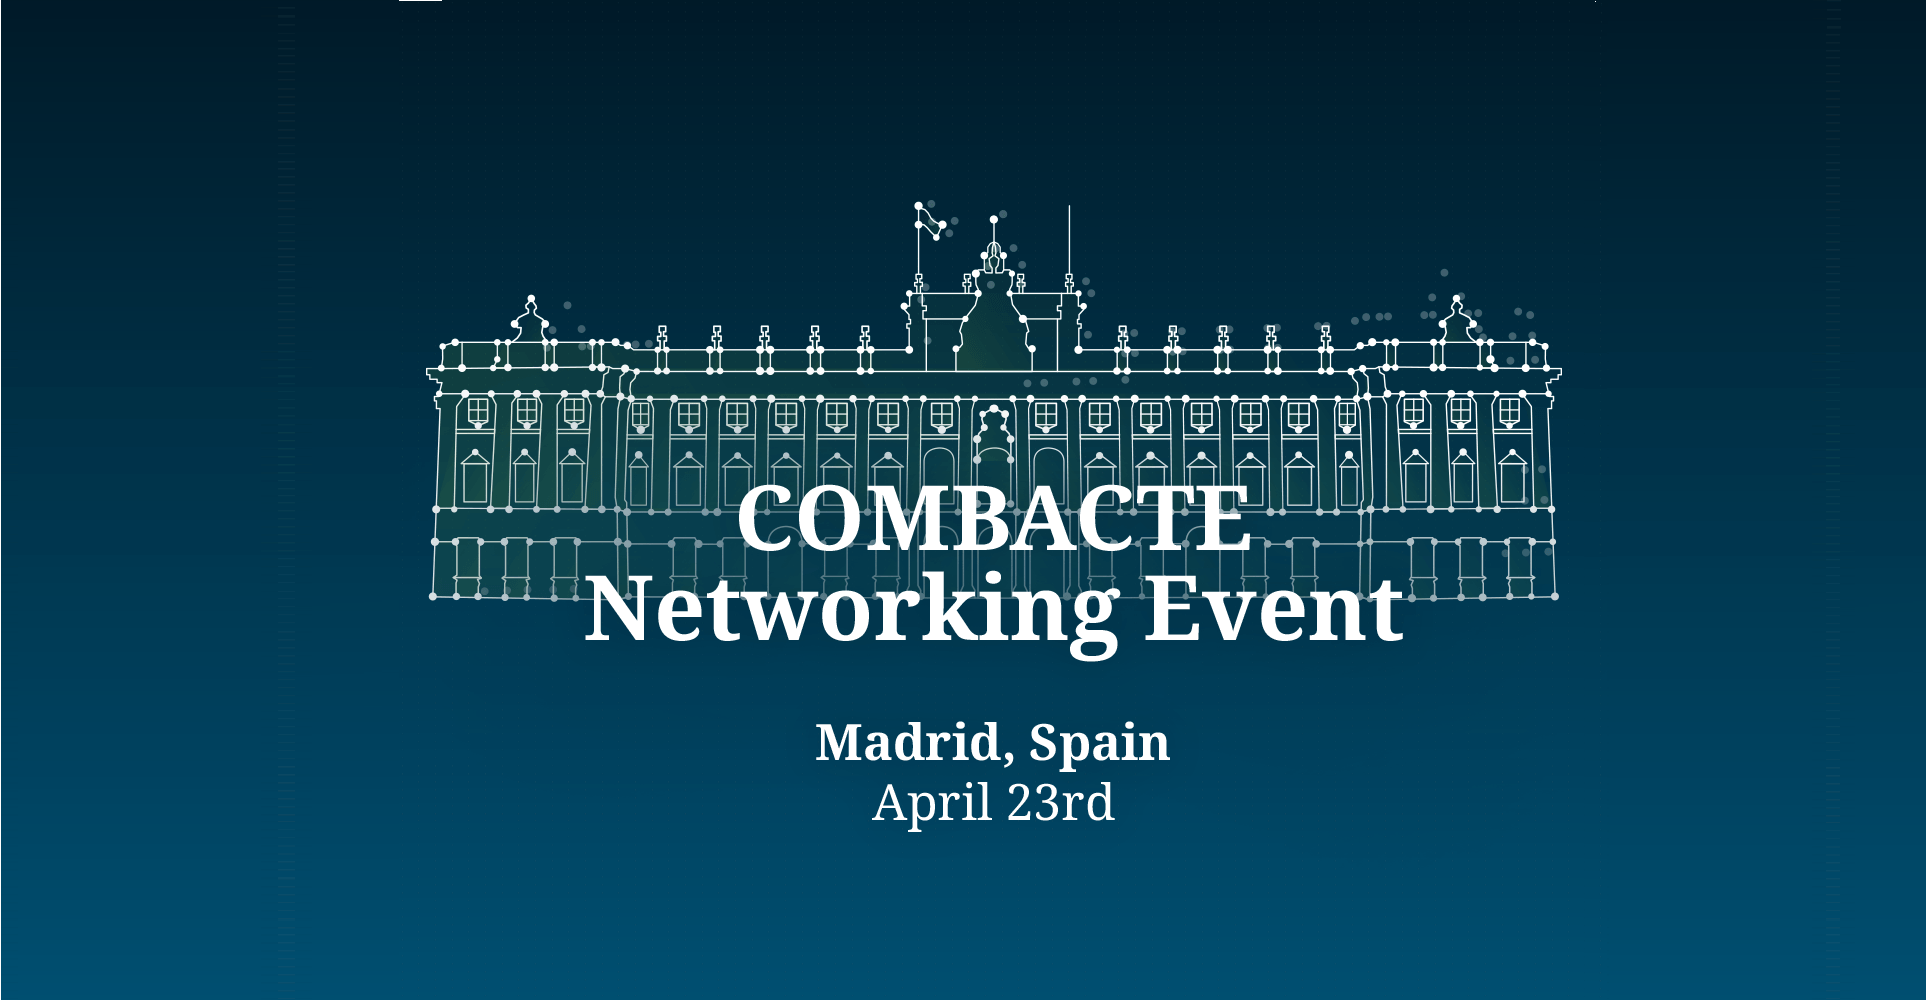 COMBACTE Networking Event, ECCMID 2018